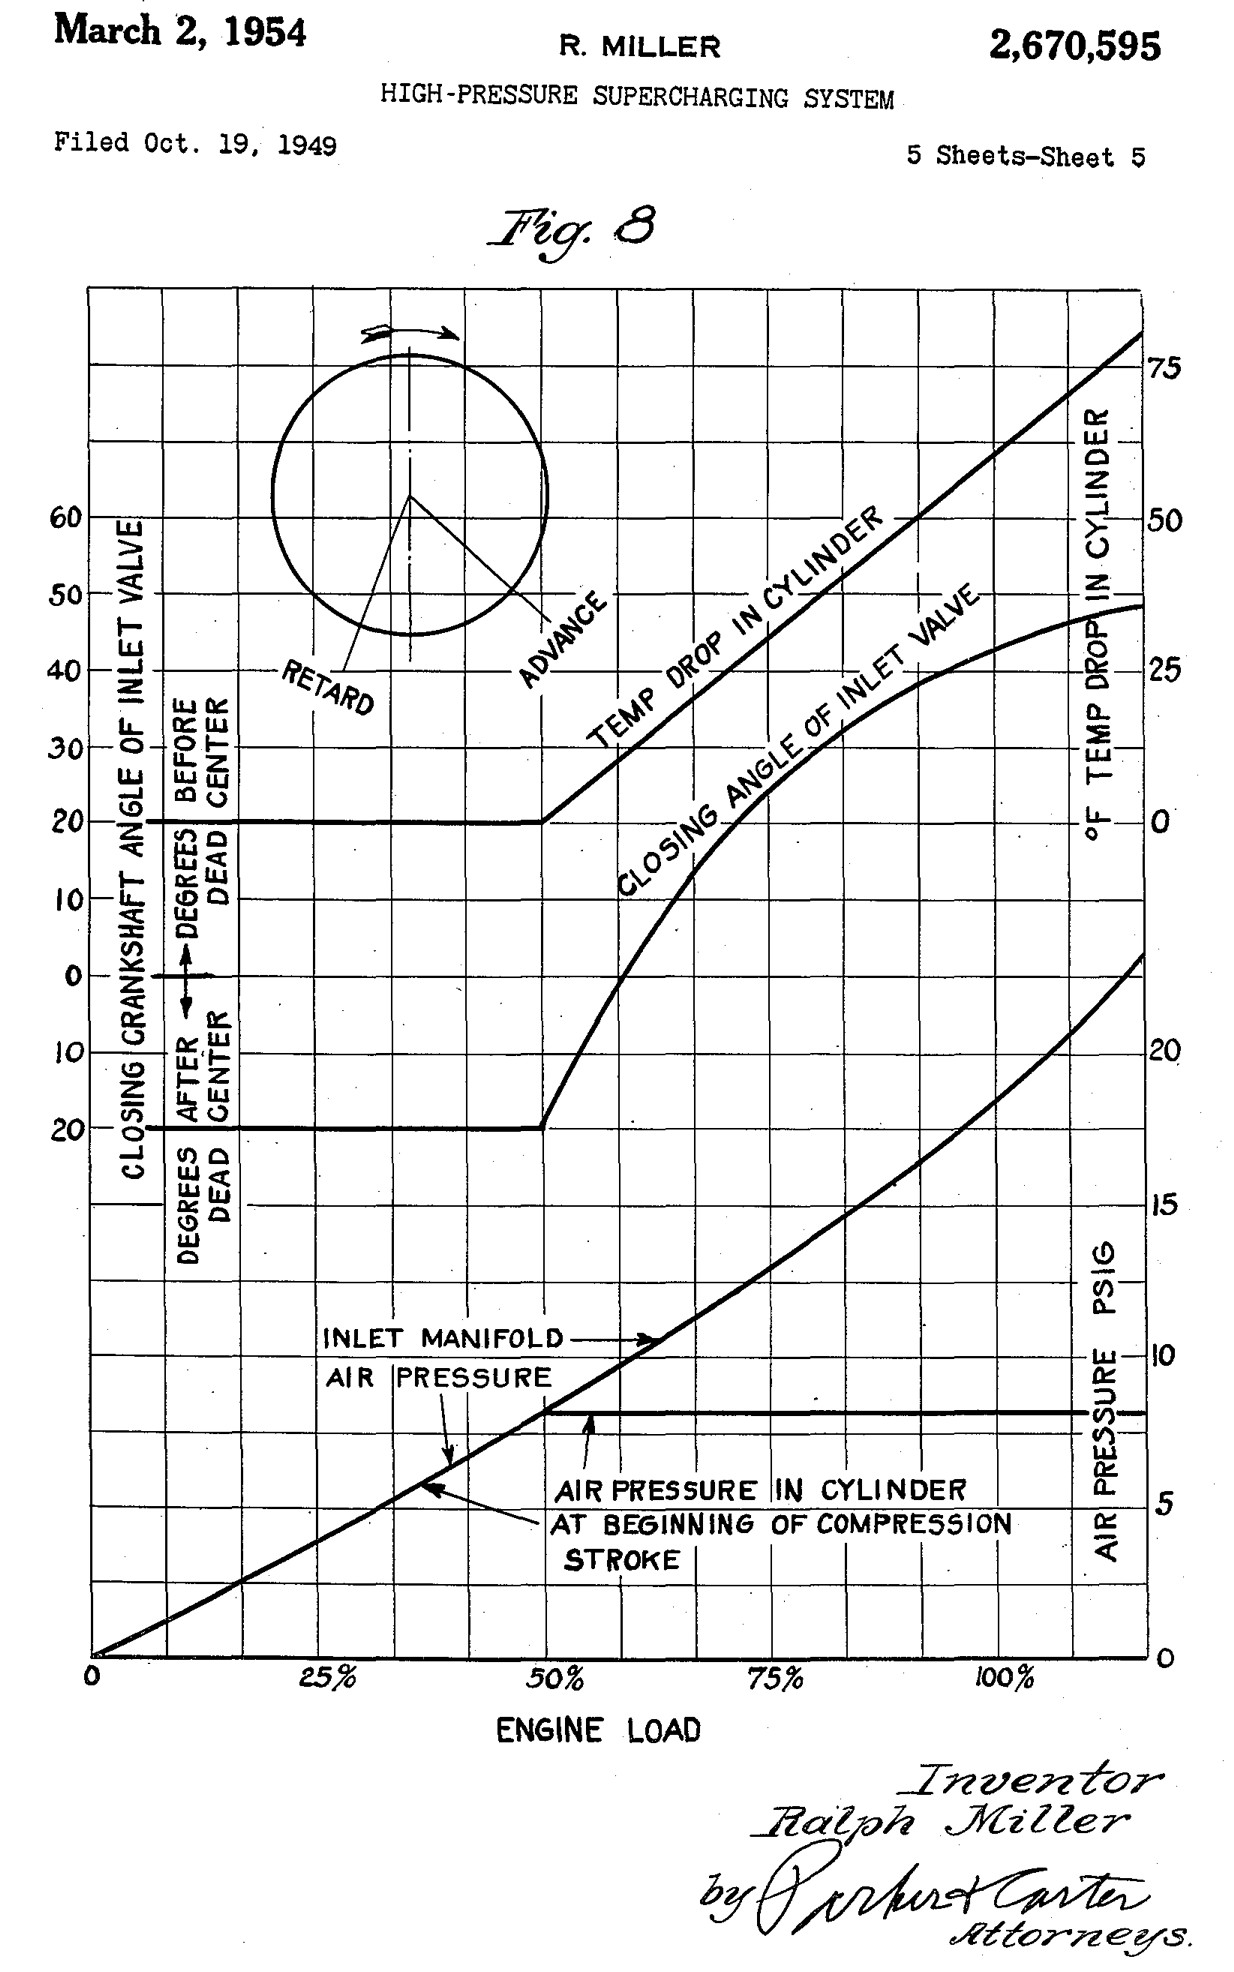 Valve Timing Diagram Of Si Engine Miller Cycle Engines Of Valve Timing Diagram Of Si Engine